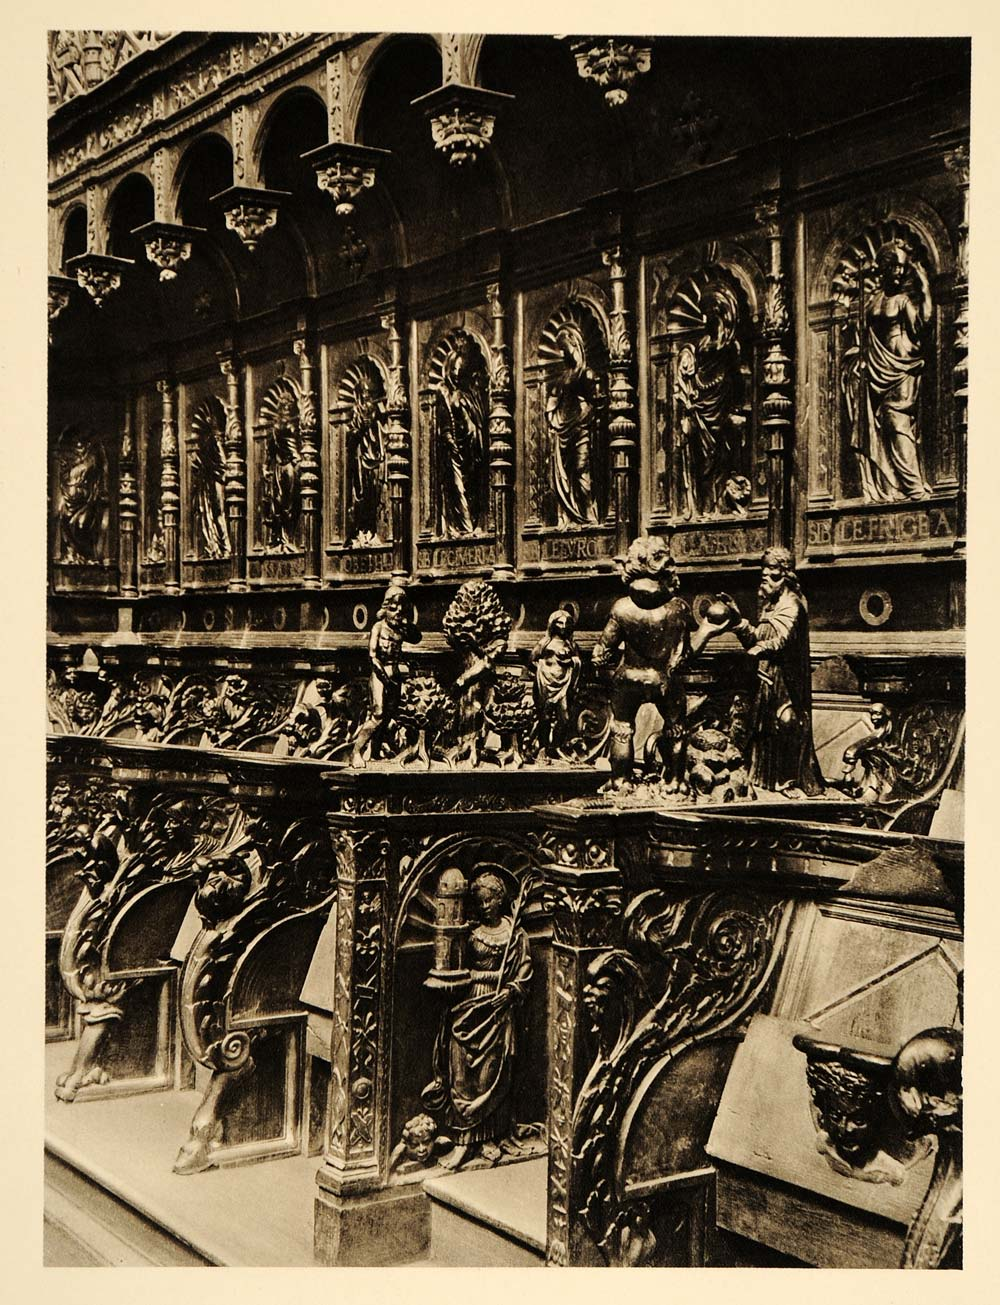 1927 Cathedral Stall Saint-Bertrand-de-Comminges France - ORIGINAL FR2